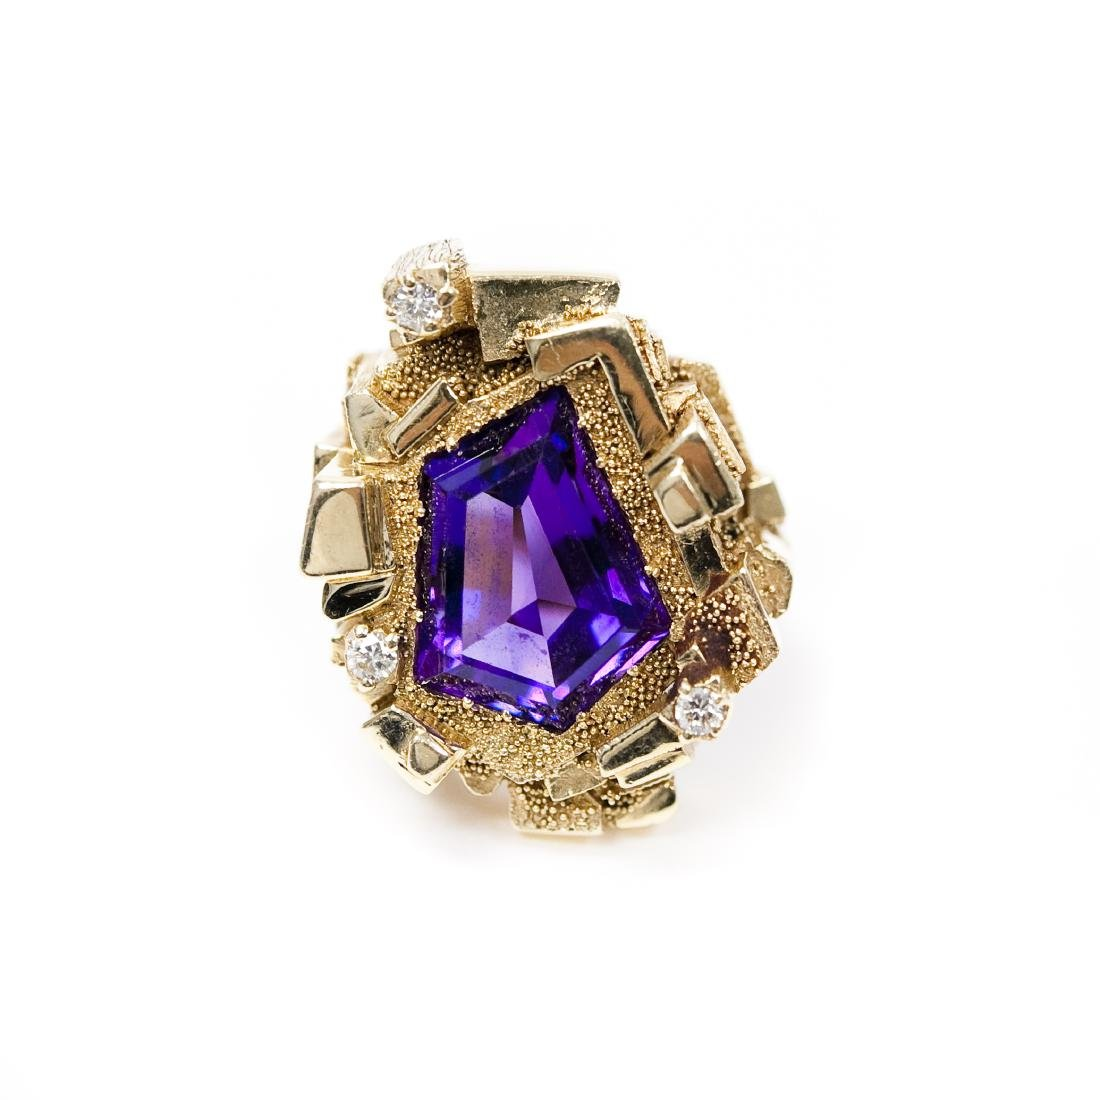 14K Yellow Gold, Amethyst & Diamond Ring.